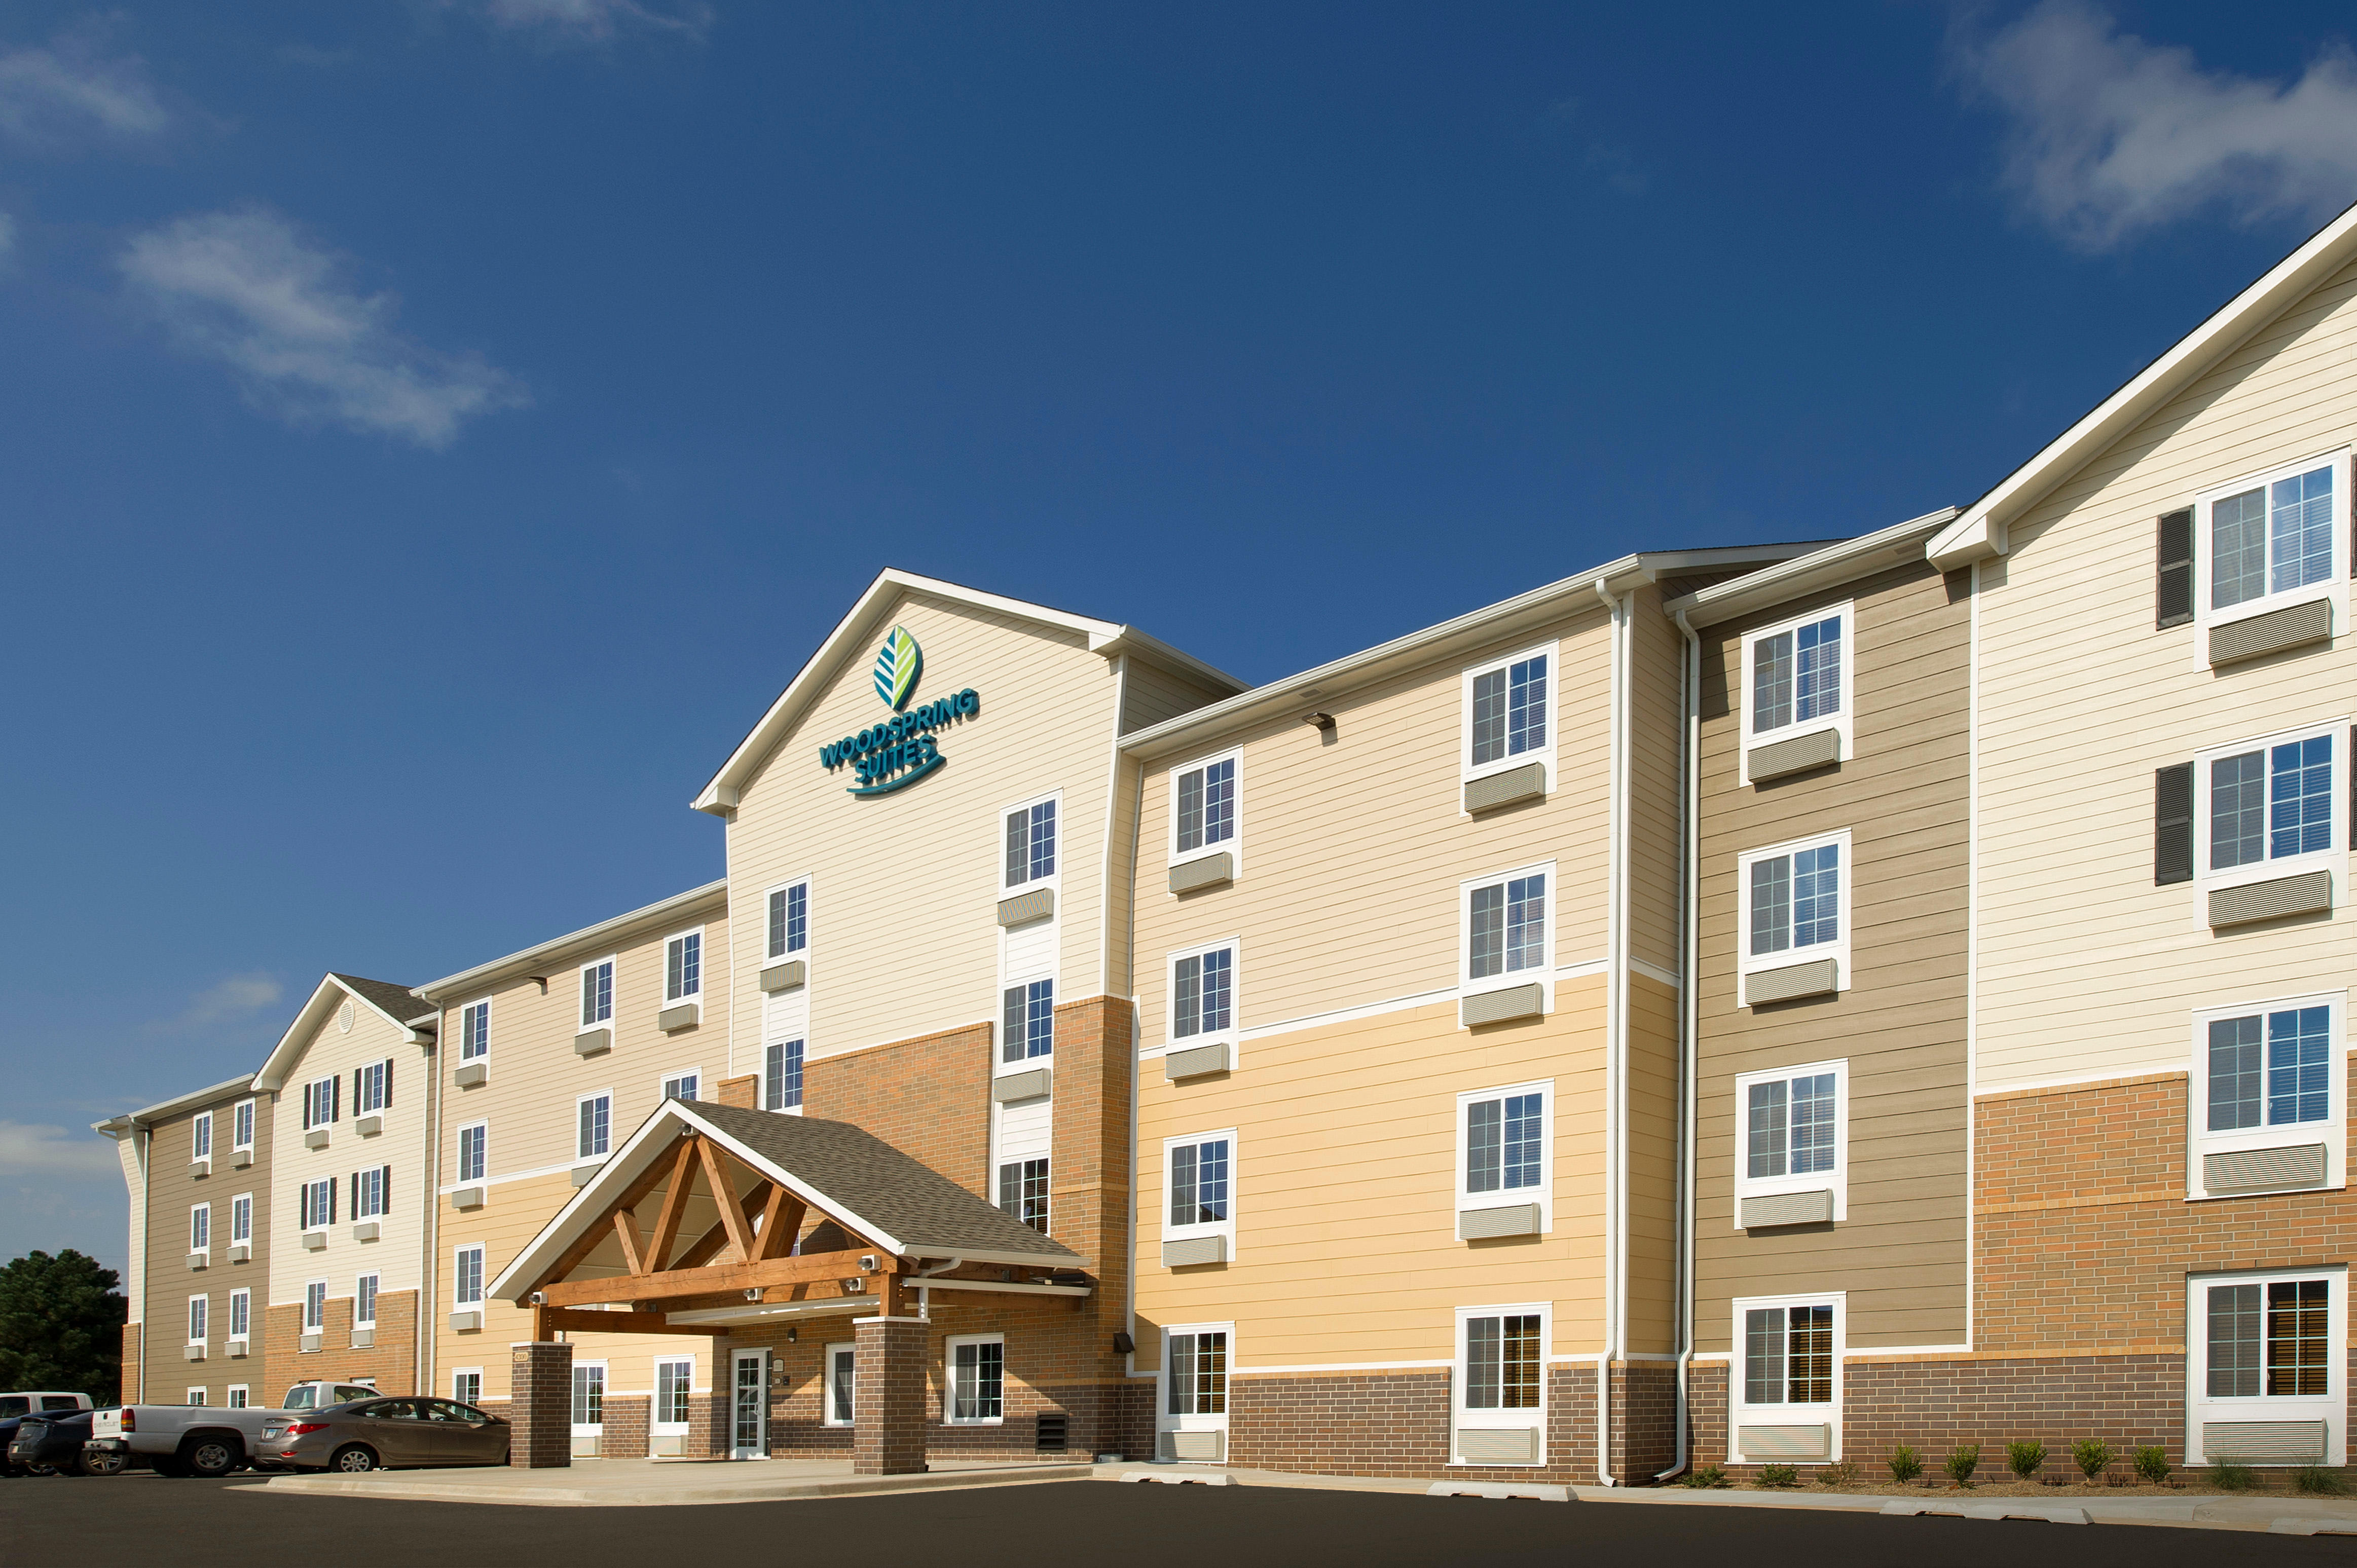 WoodSpring Suites Oklahoma City Airport image 5